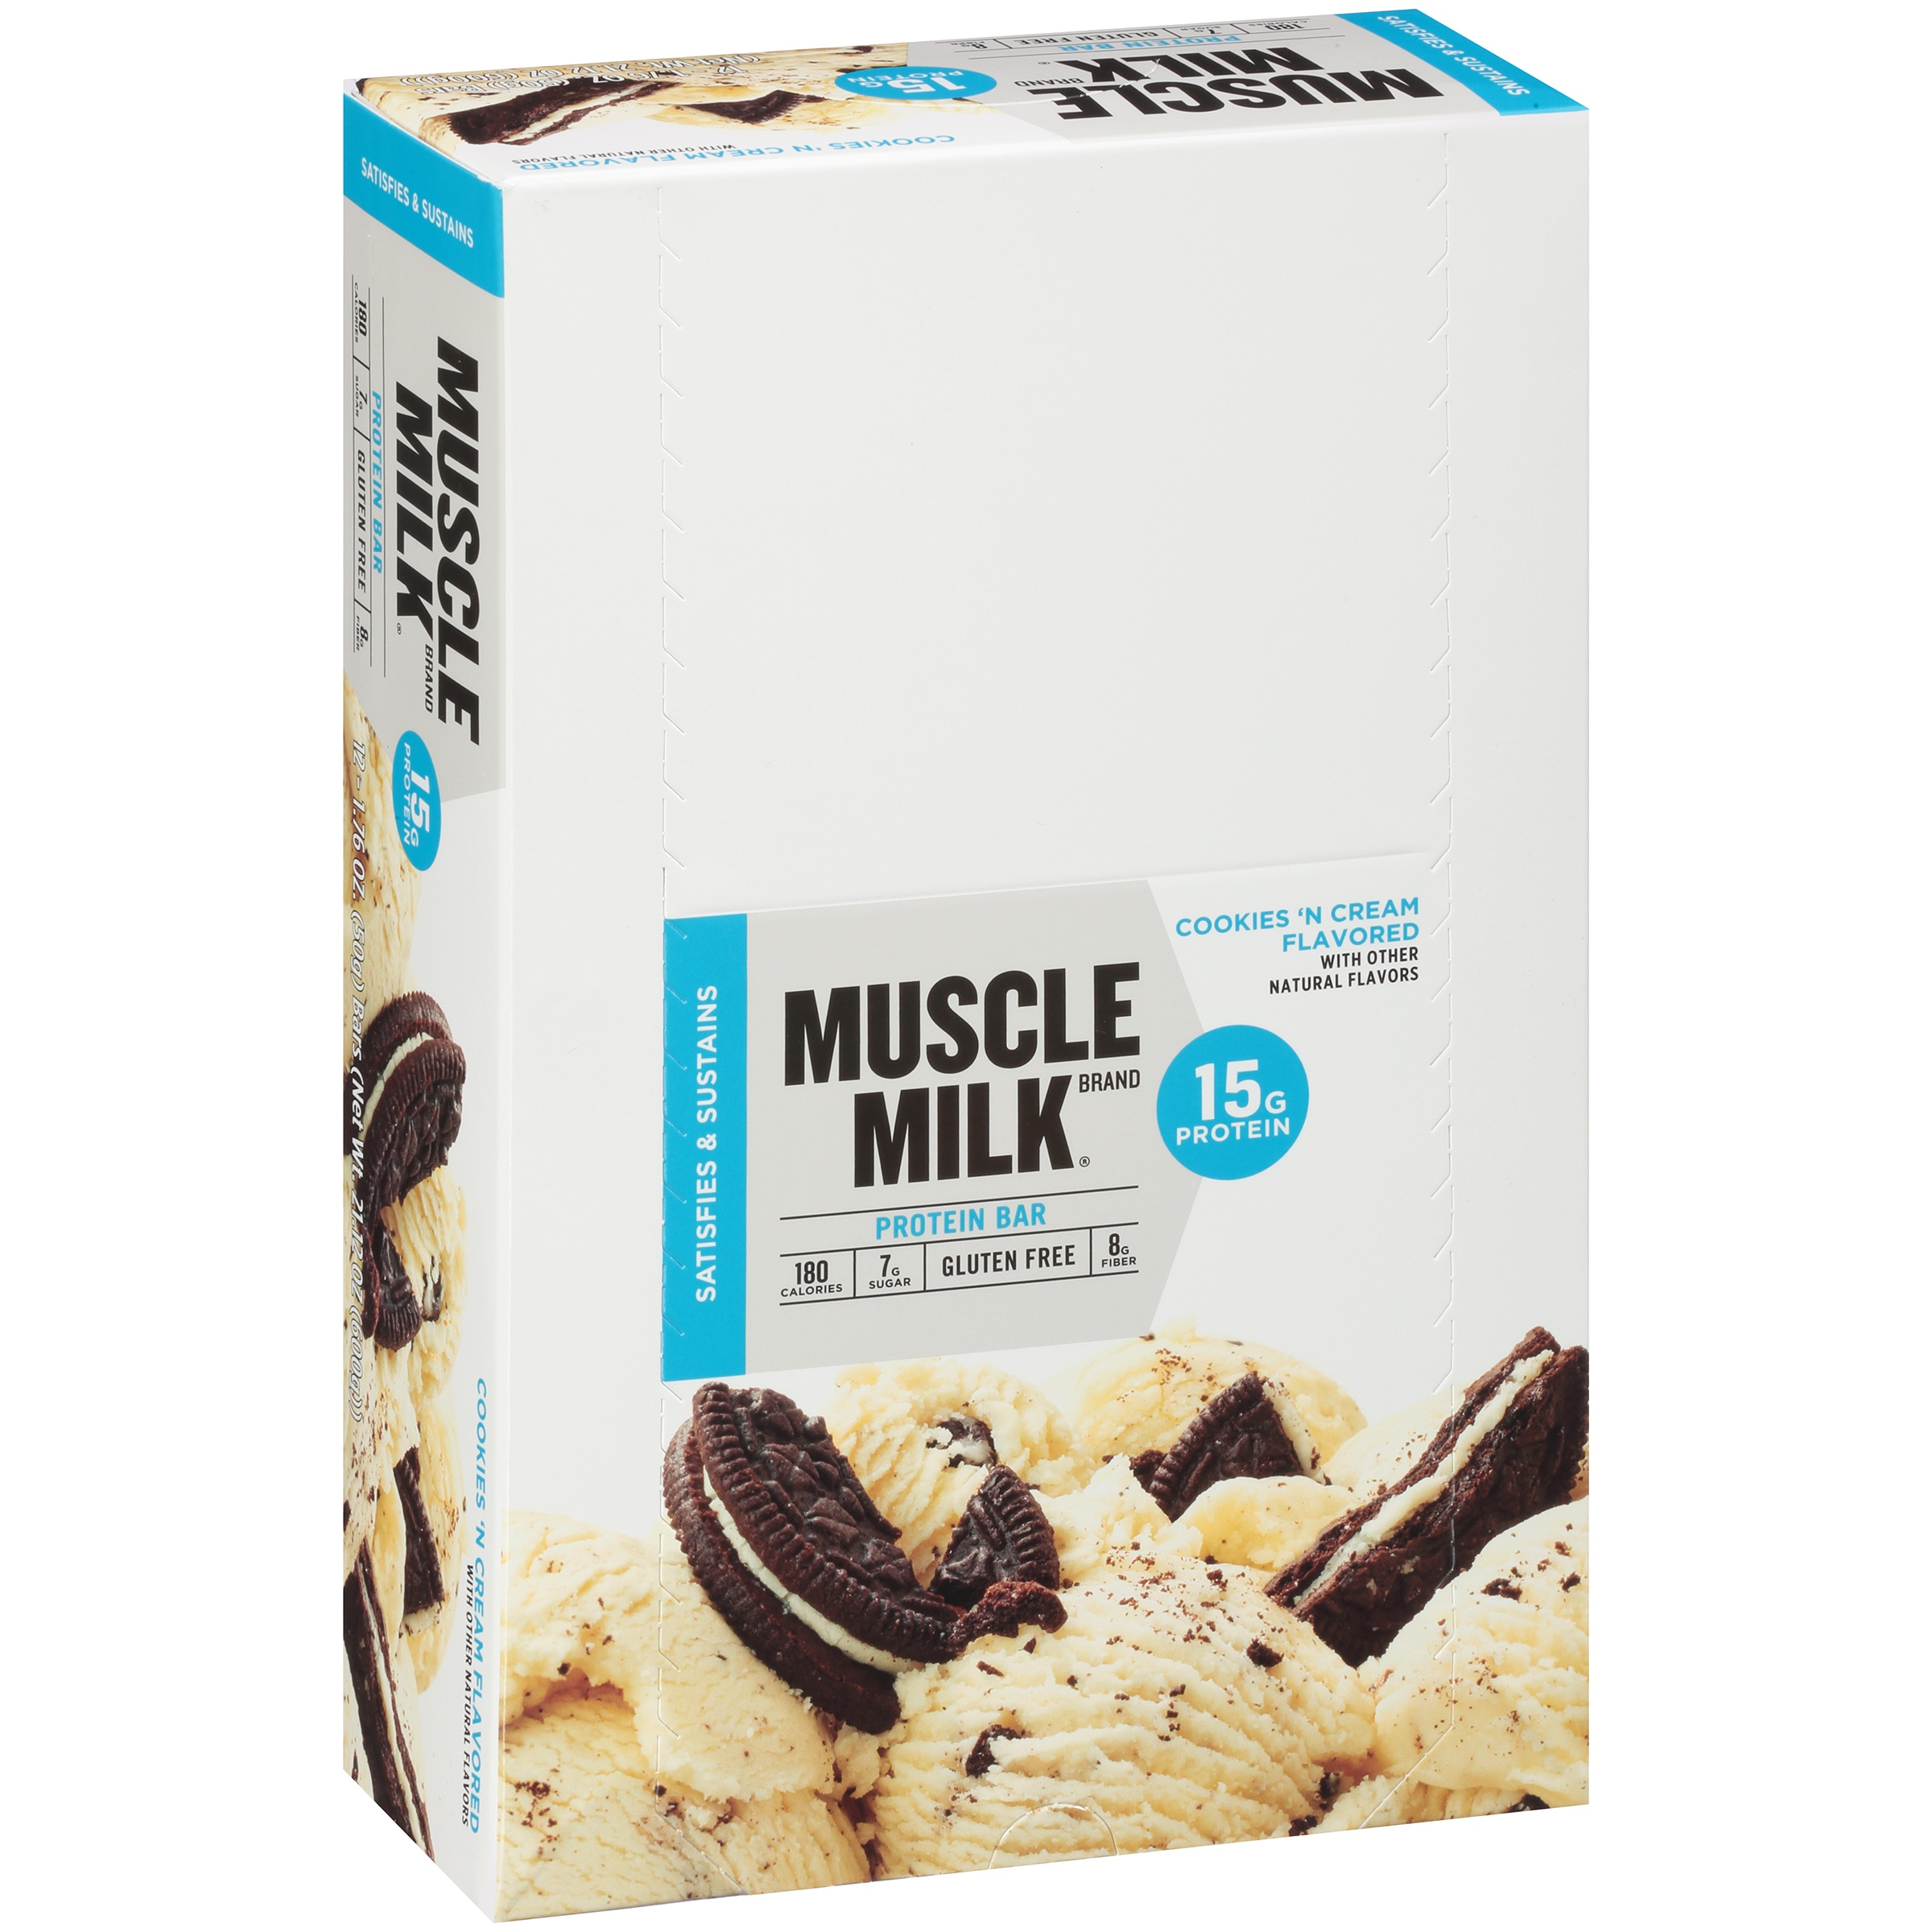 muscle milk protein bar, cookies 'n cream, 15g protein, 12 ct